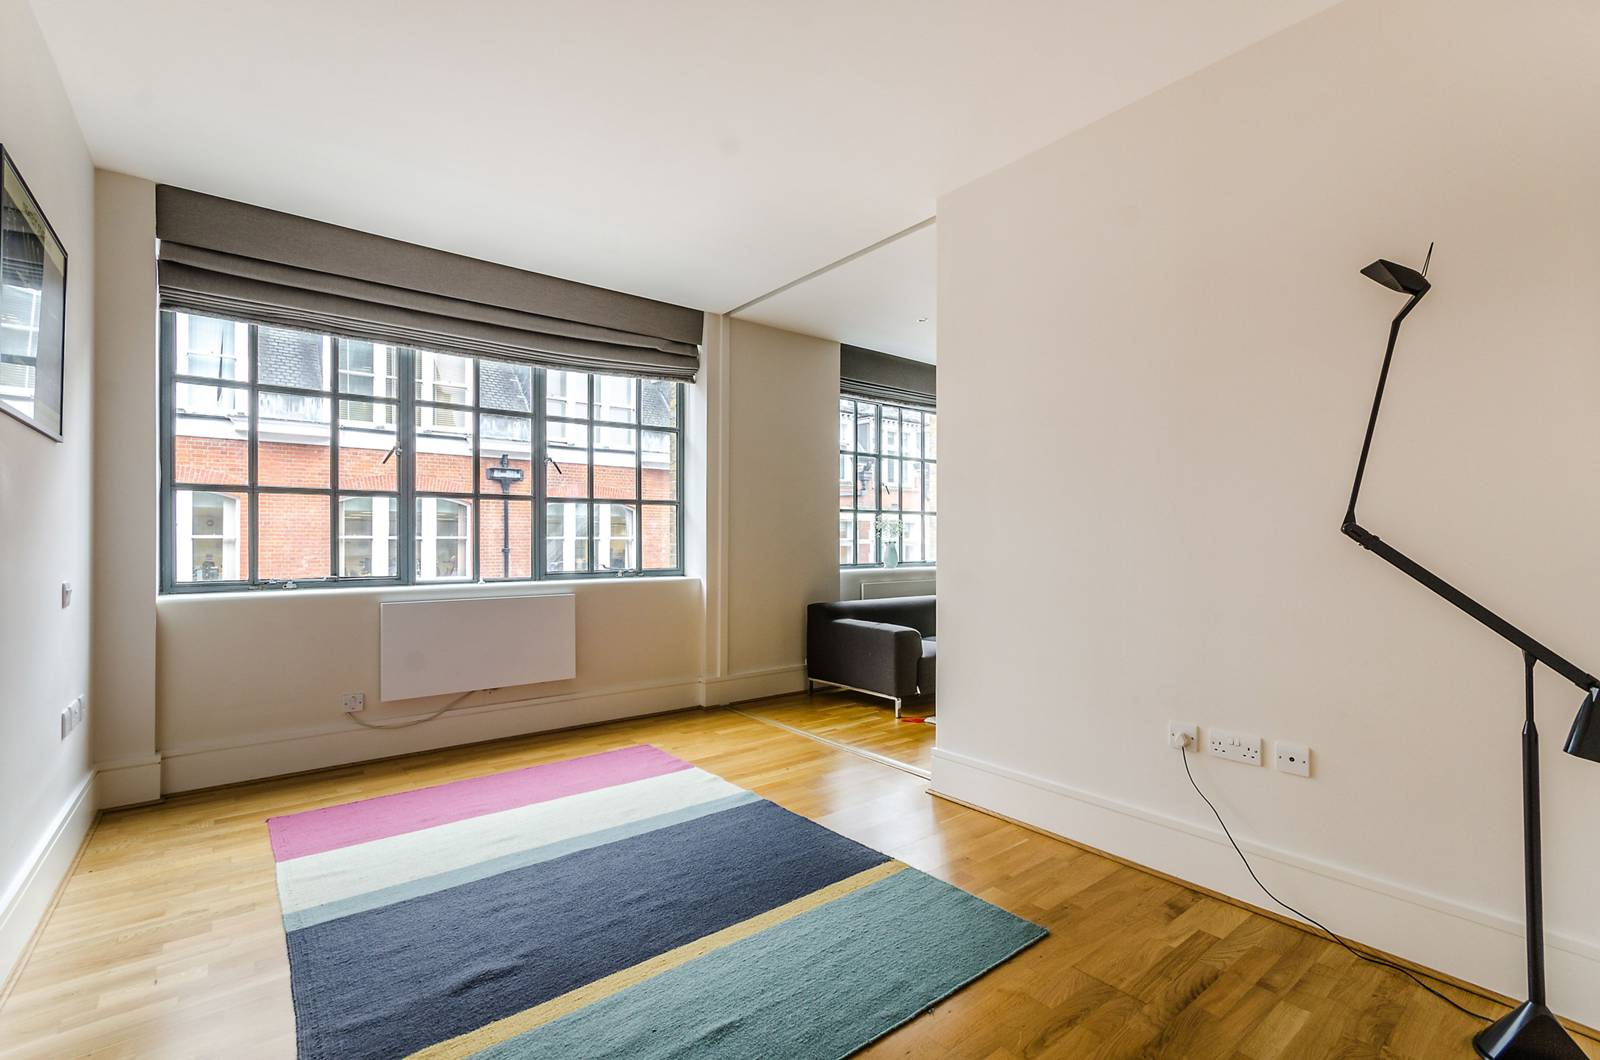 2 Bedroom Garden Flat London 2 Bedroom Flat To Rent In Kean Street Covent Garden Wc2b